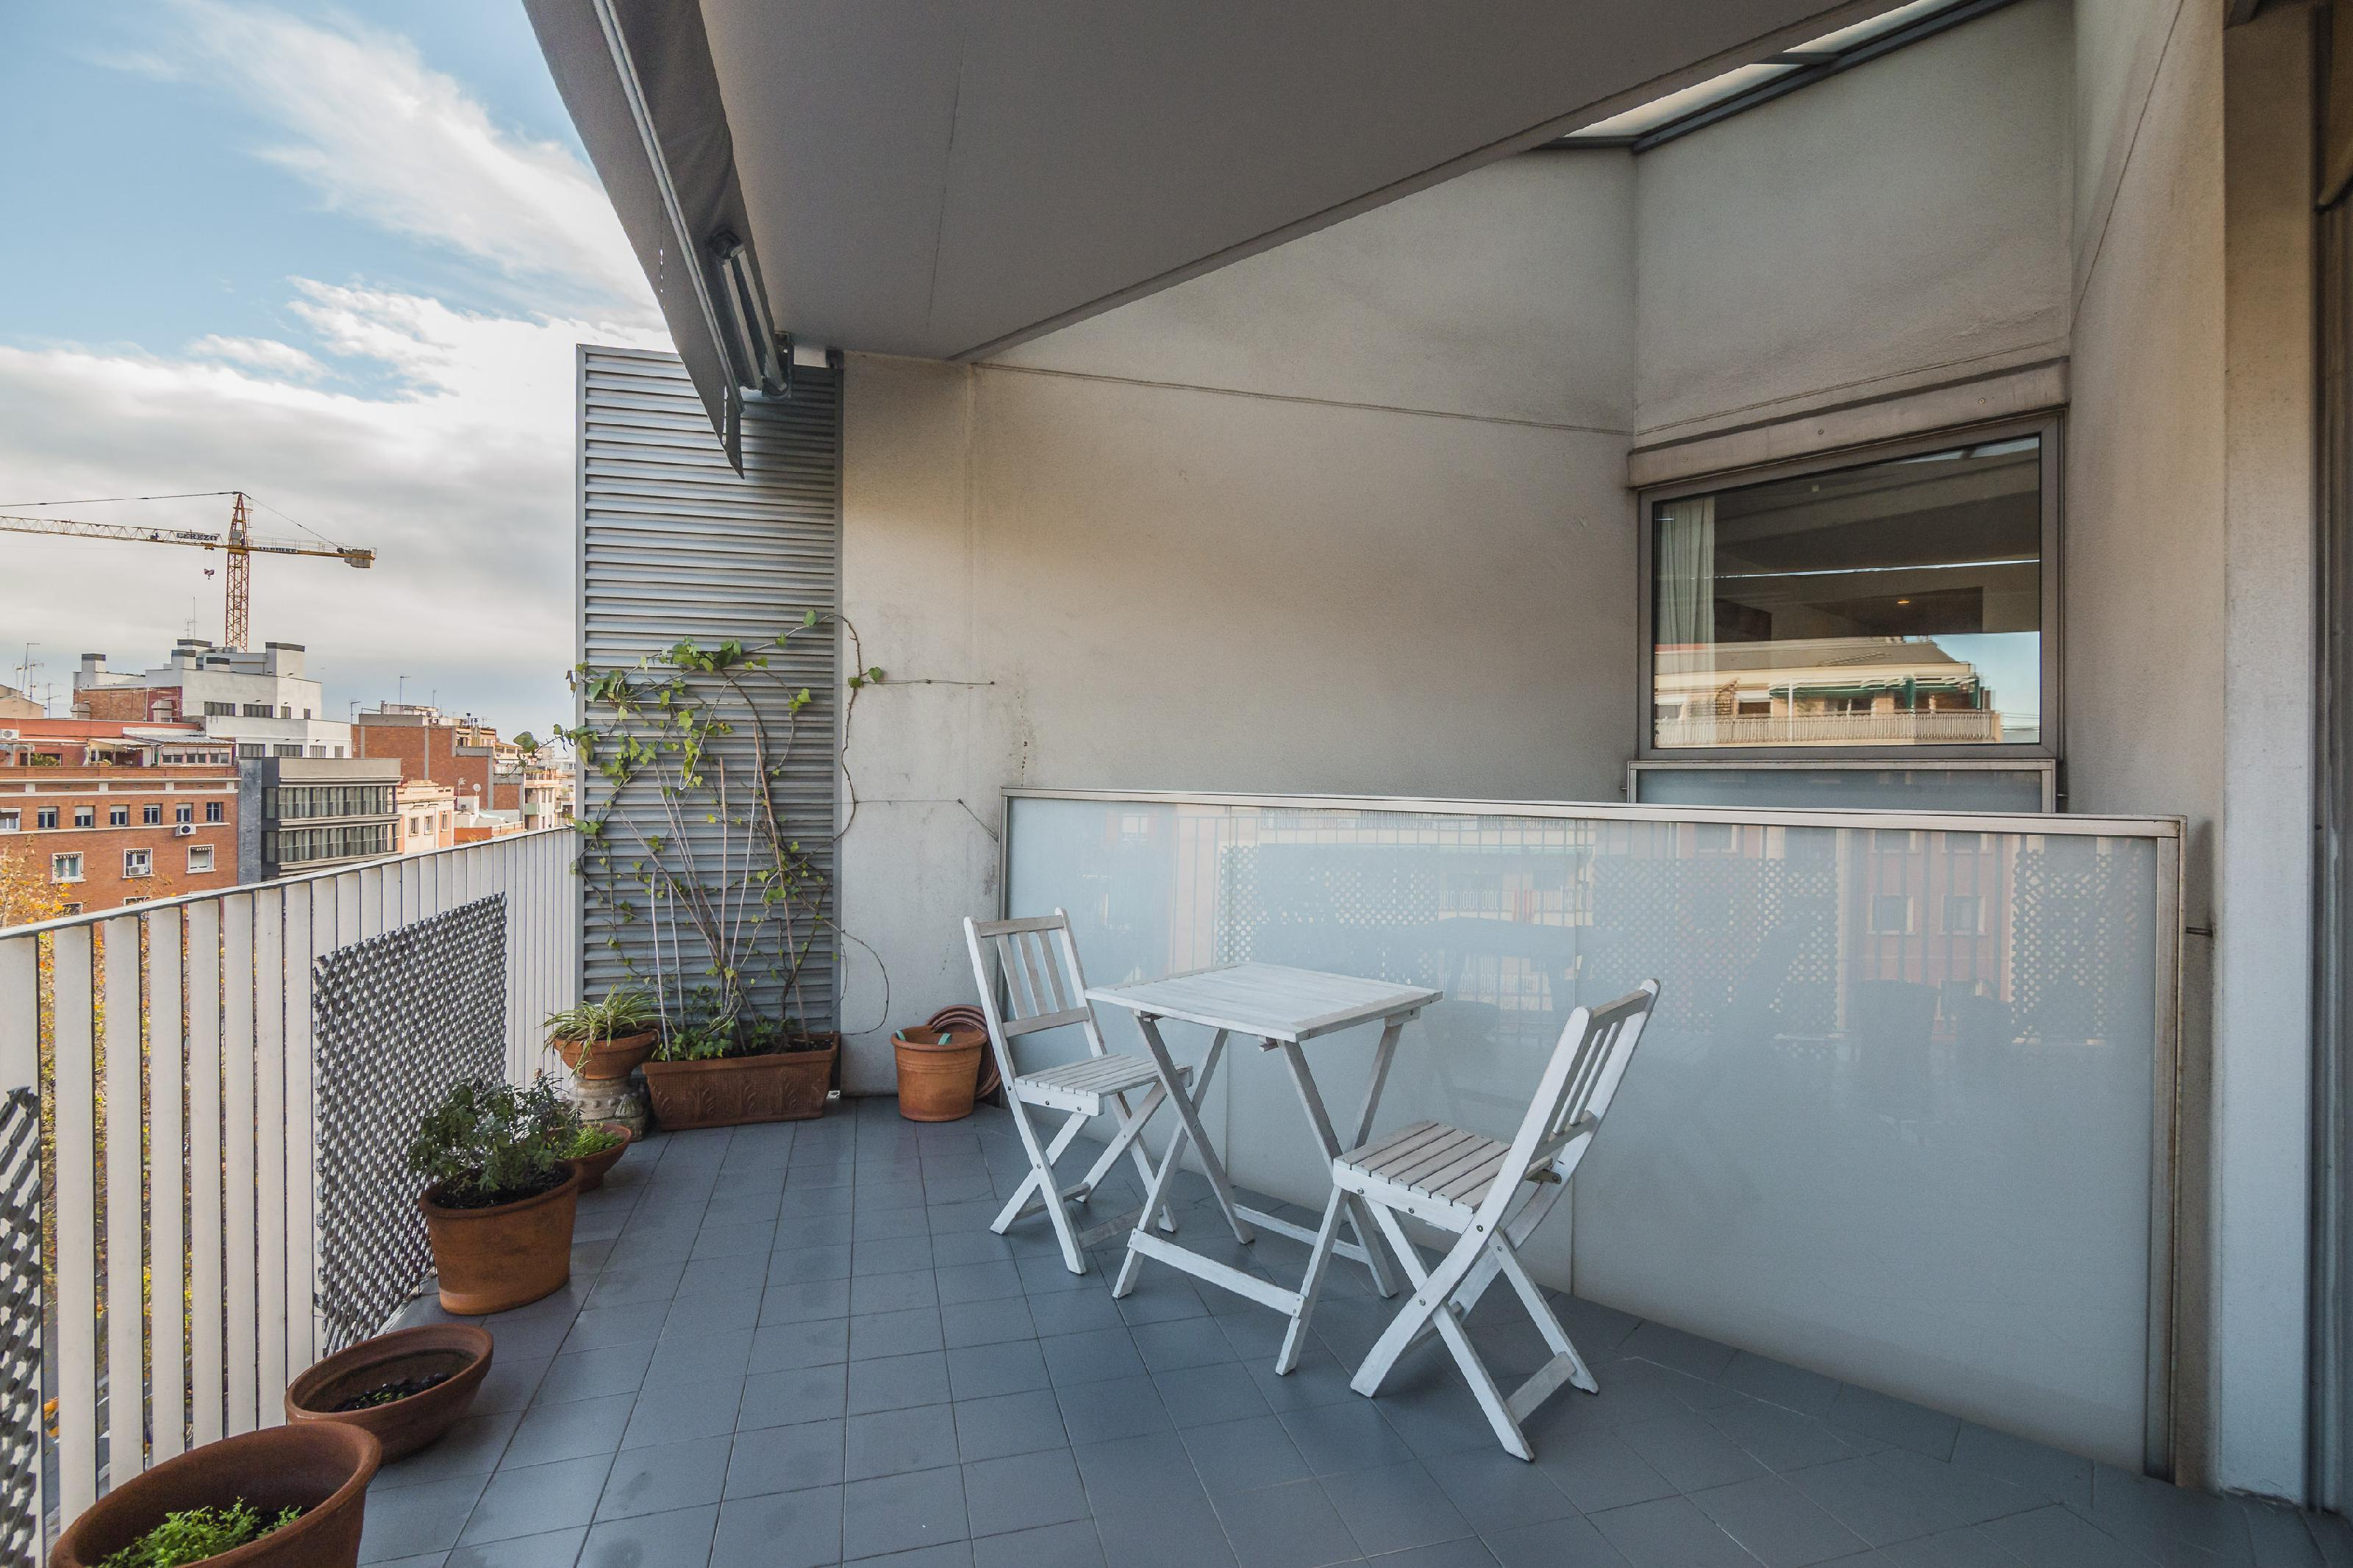 230834 Penthouse for sale in Horta-Guinardó, El Guinardó 21